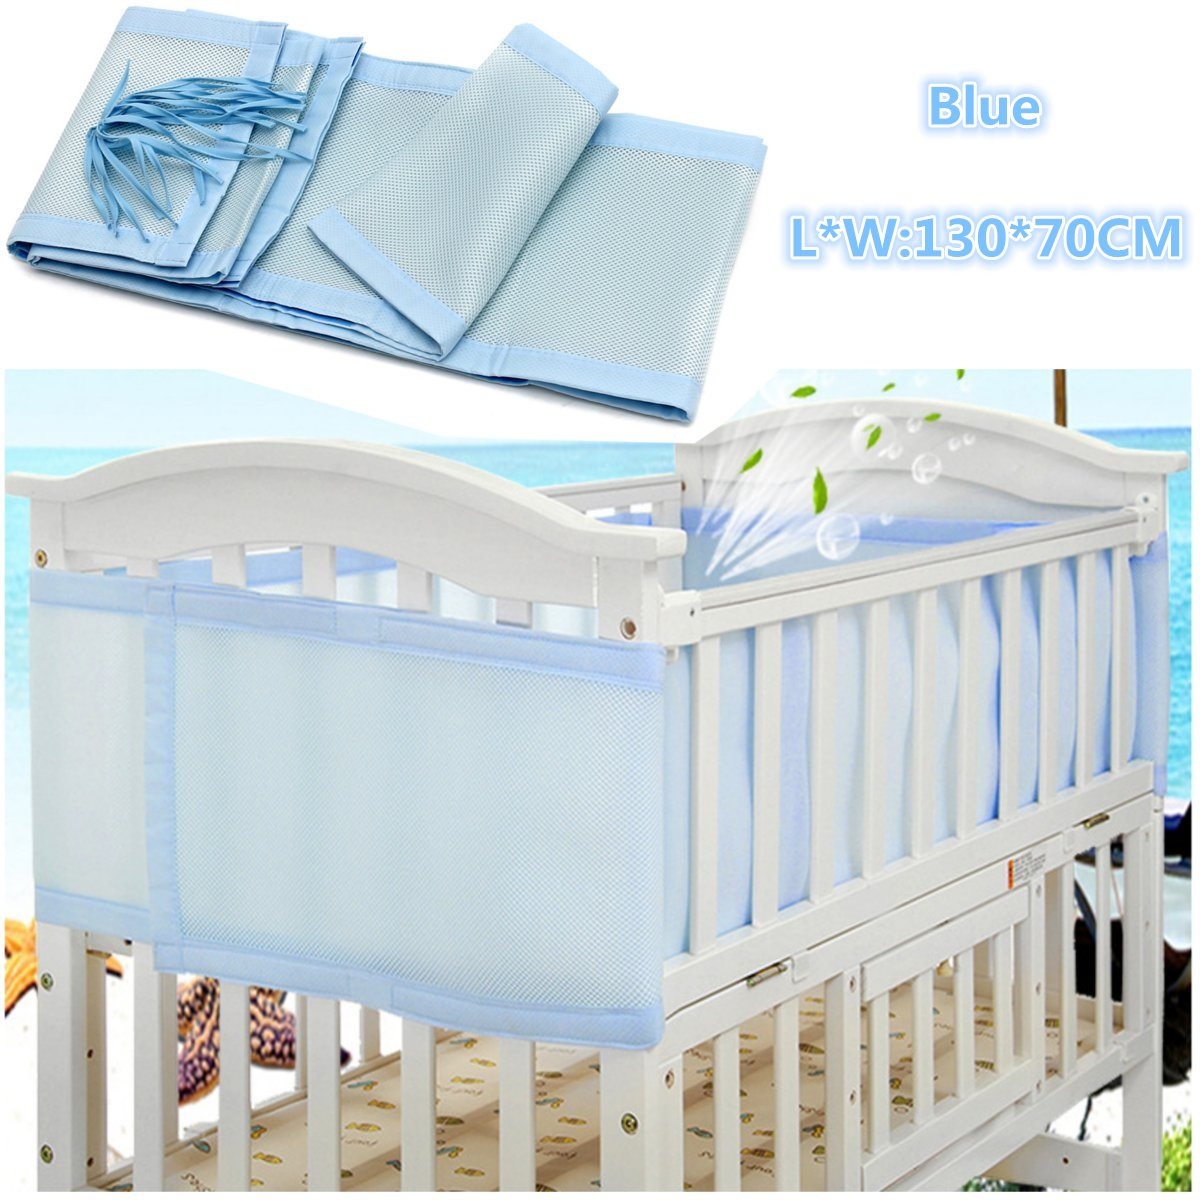 Breathable Blue Infant Baby Air Pad Cot Bumper Mesh Protection Cover Infantile Bedding Baby Safety Baby Care Supplies 130x70cm single sided blue ccs foam pad by presta